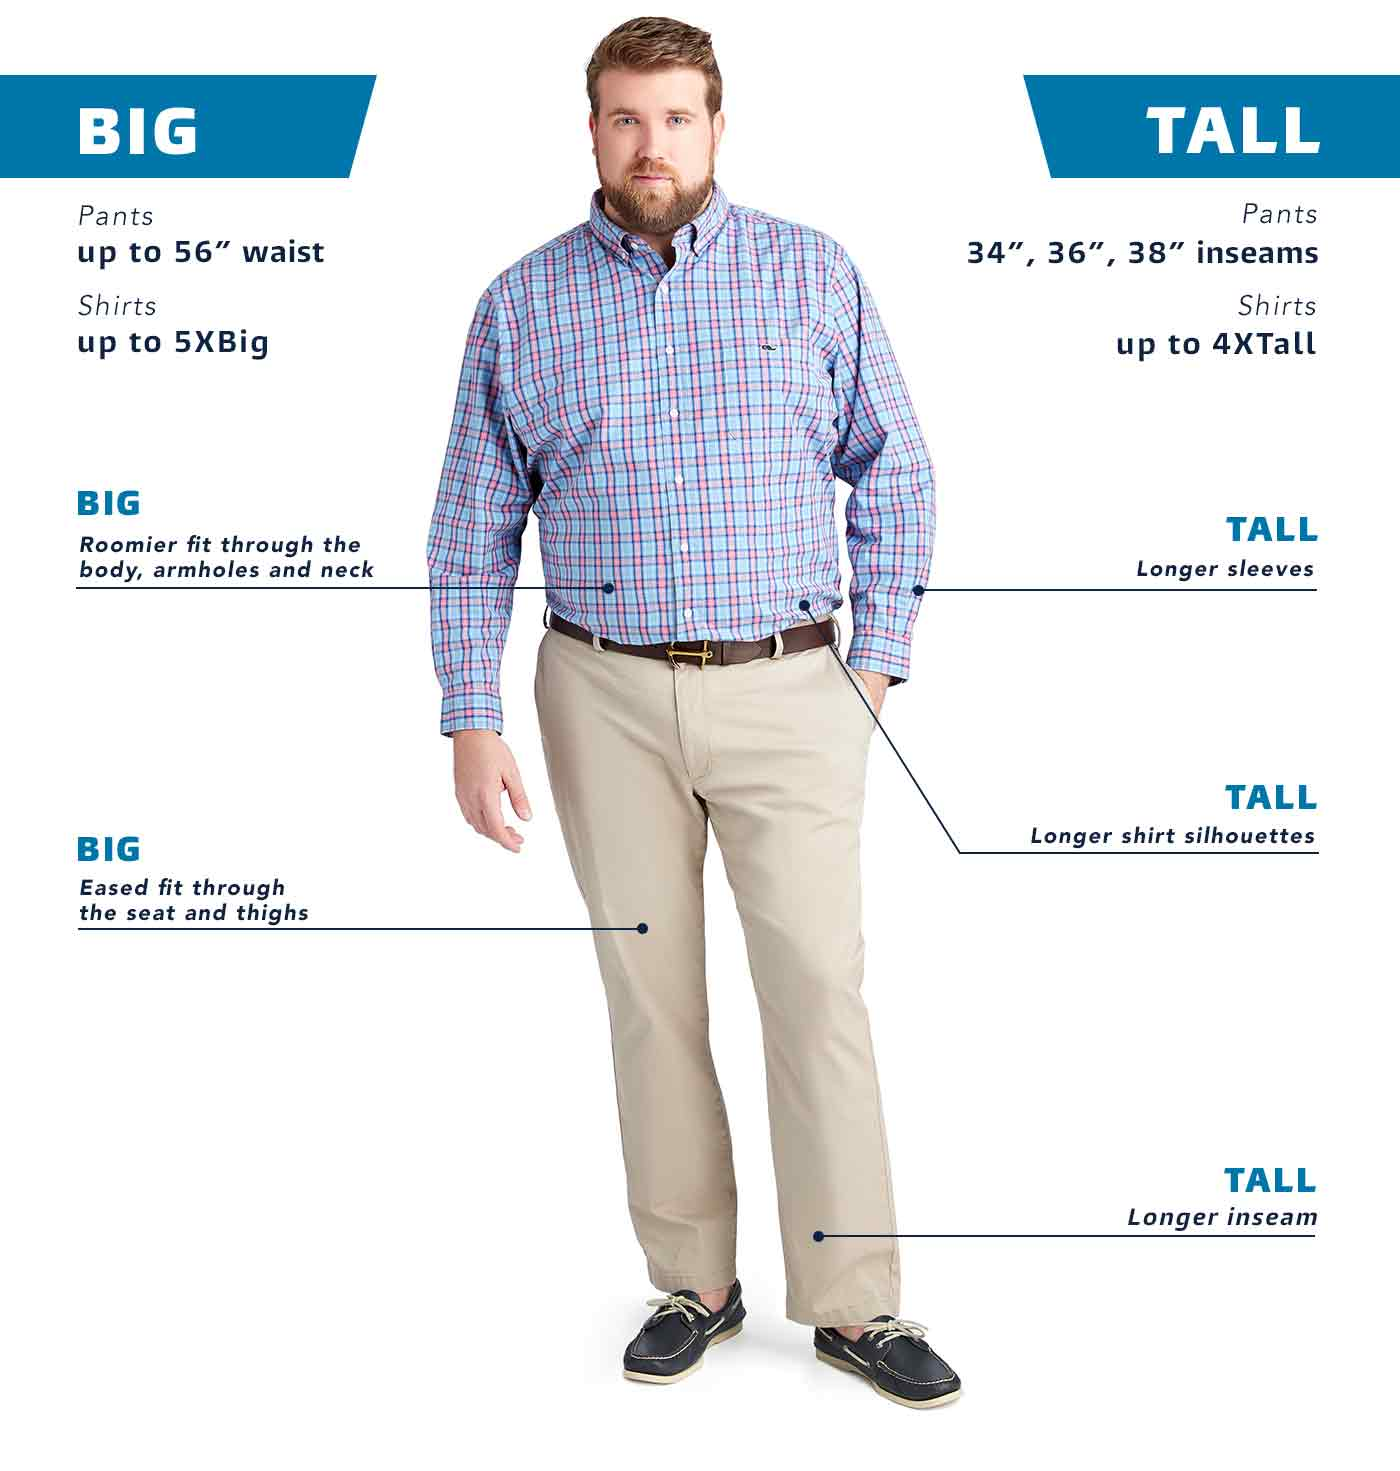 Big and Tall Fit Guide. We offer Pants up to 56 inch waist and shirts up to 5XB. We offer Pants with 34, 36 and 38 inch inseam and shirts up to 4XT. Big means a roomier fit throughout the body, armholes and neck and an eased fit through the seat and thighs. Tall means longer sleeves, longer shirt silhouettes and a longer inseam.